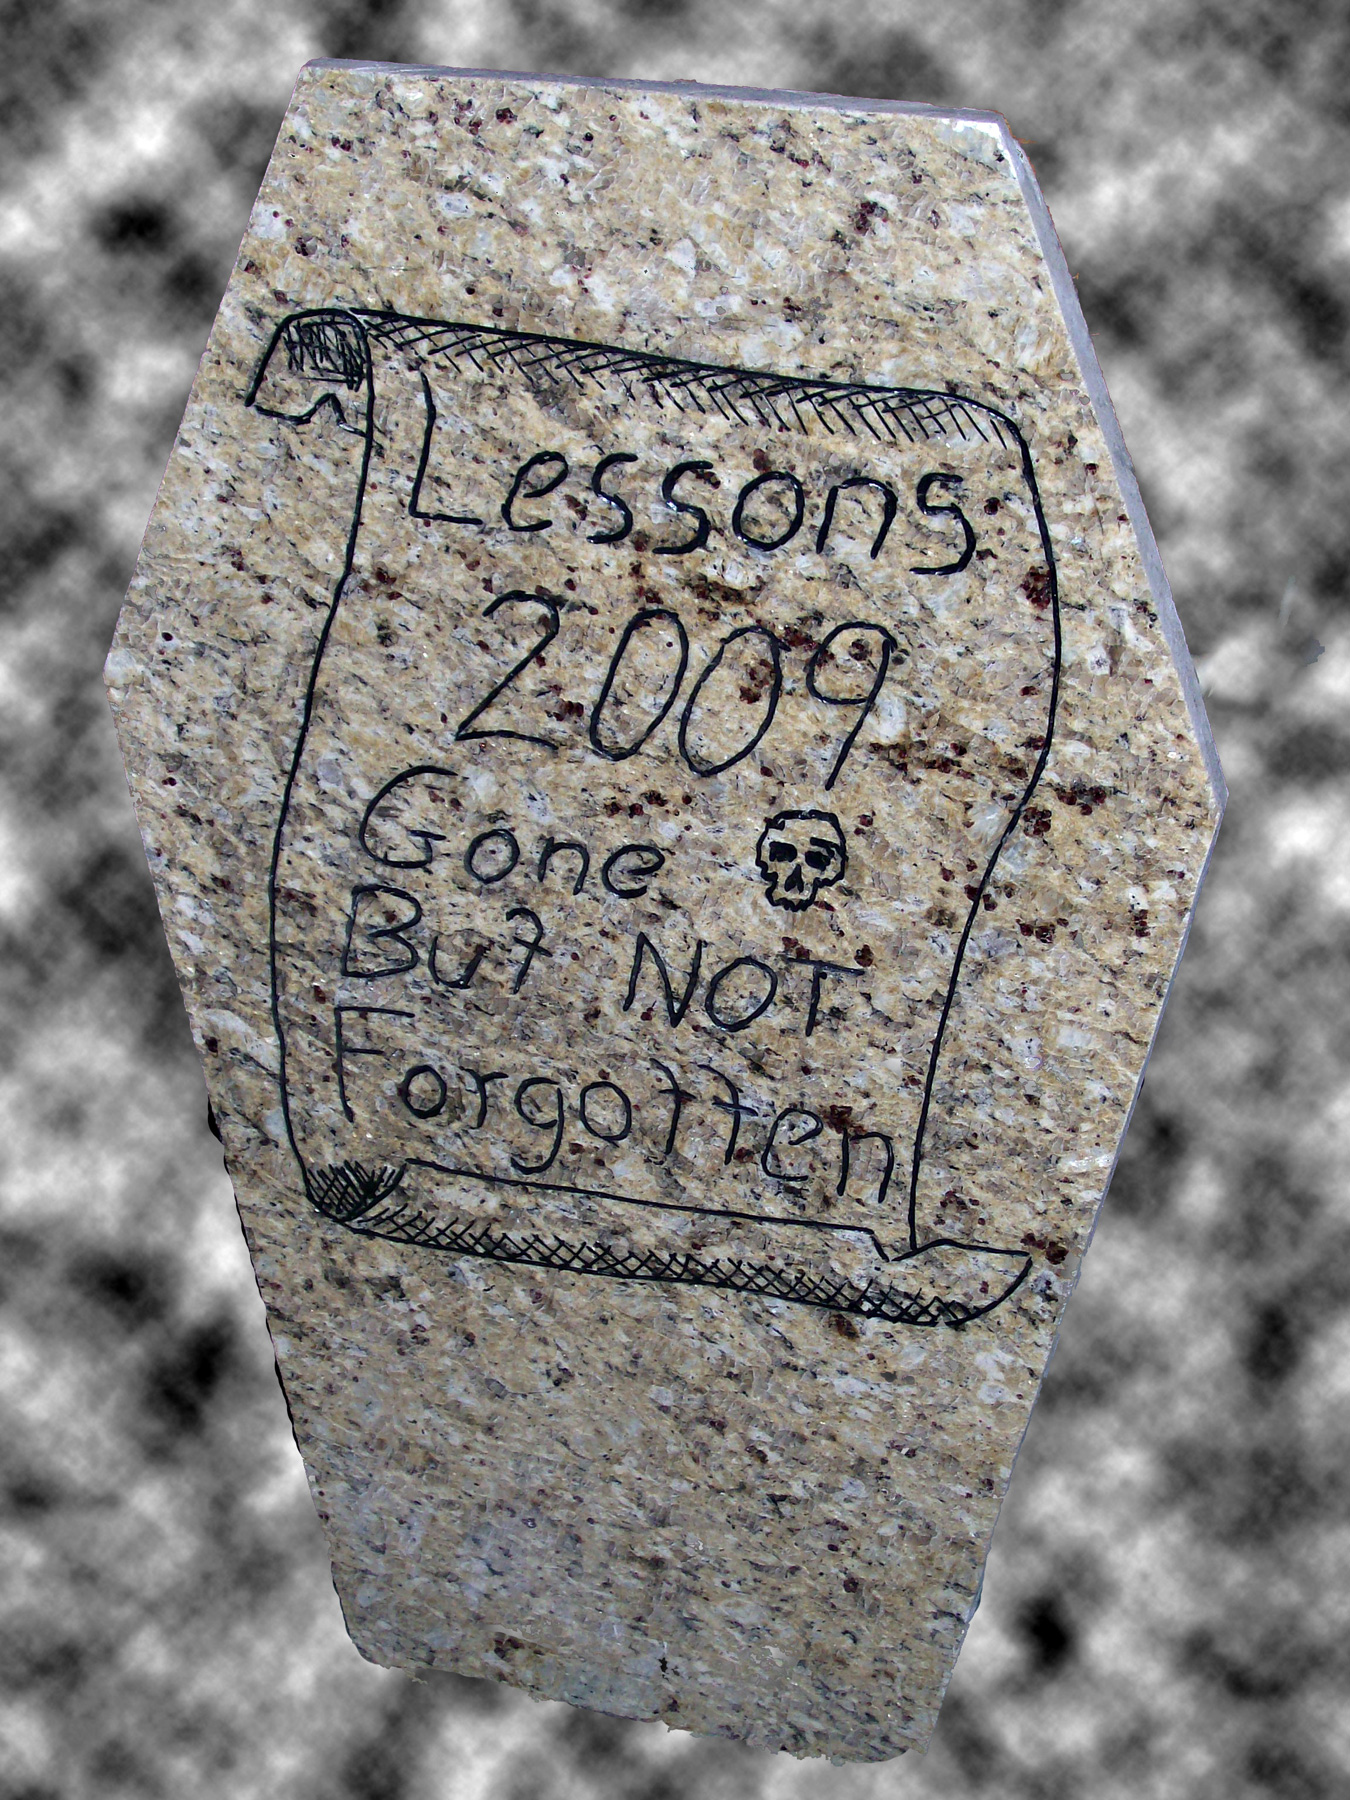 Lessons 2009 Headstone